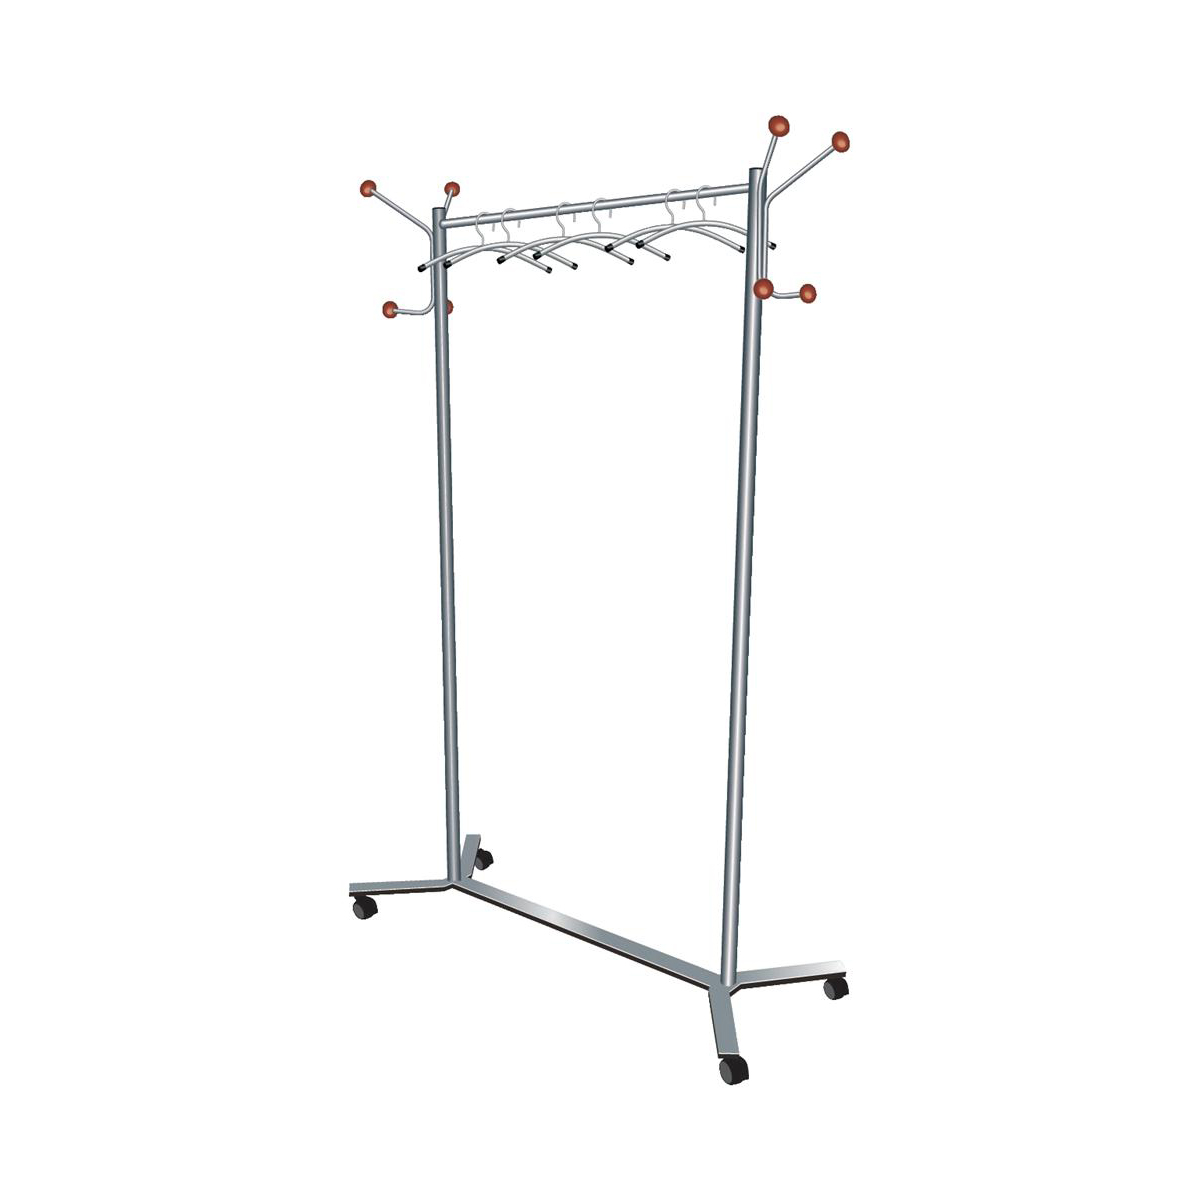 Business Coat Rack Mobile 4 Wheels 4 Pegs 4 Hooks Capacity of 36 Hangers 1175x440x1740mm Silver